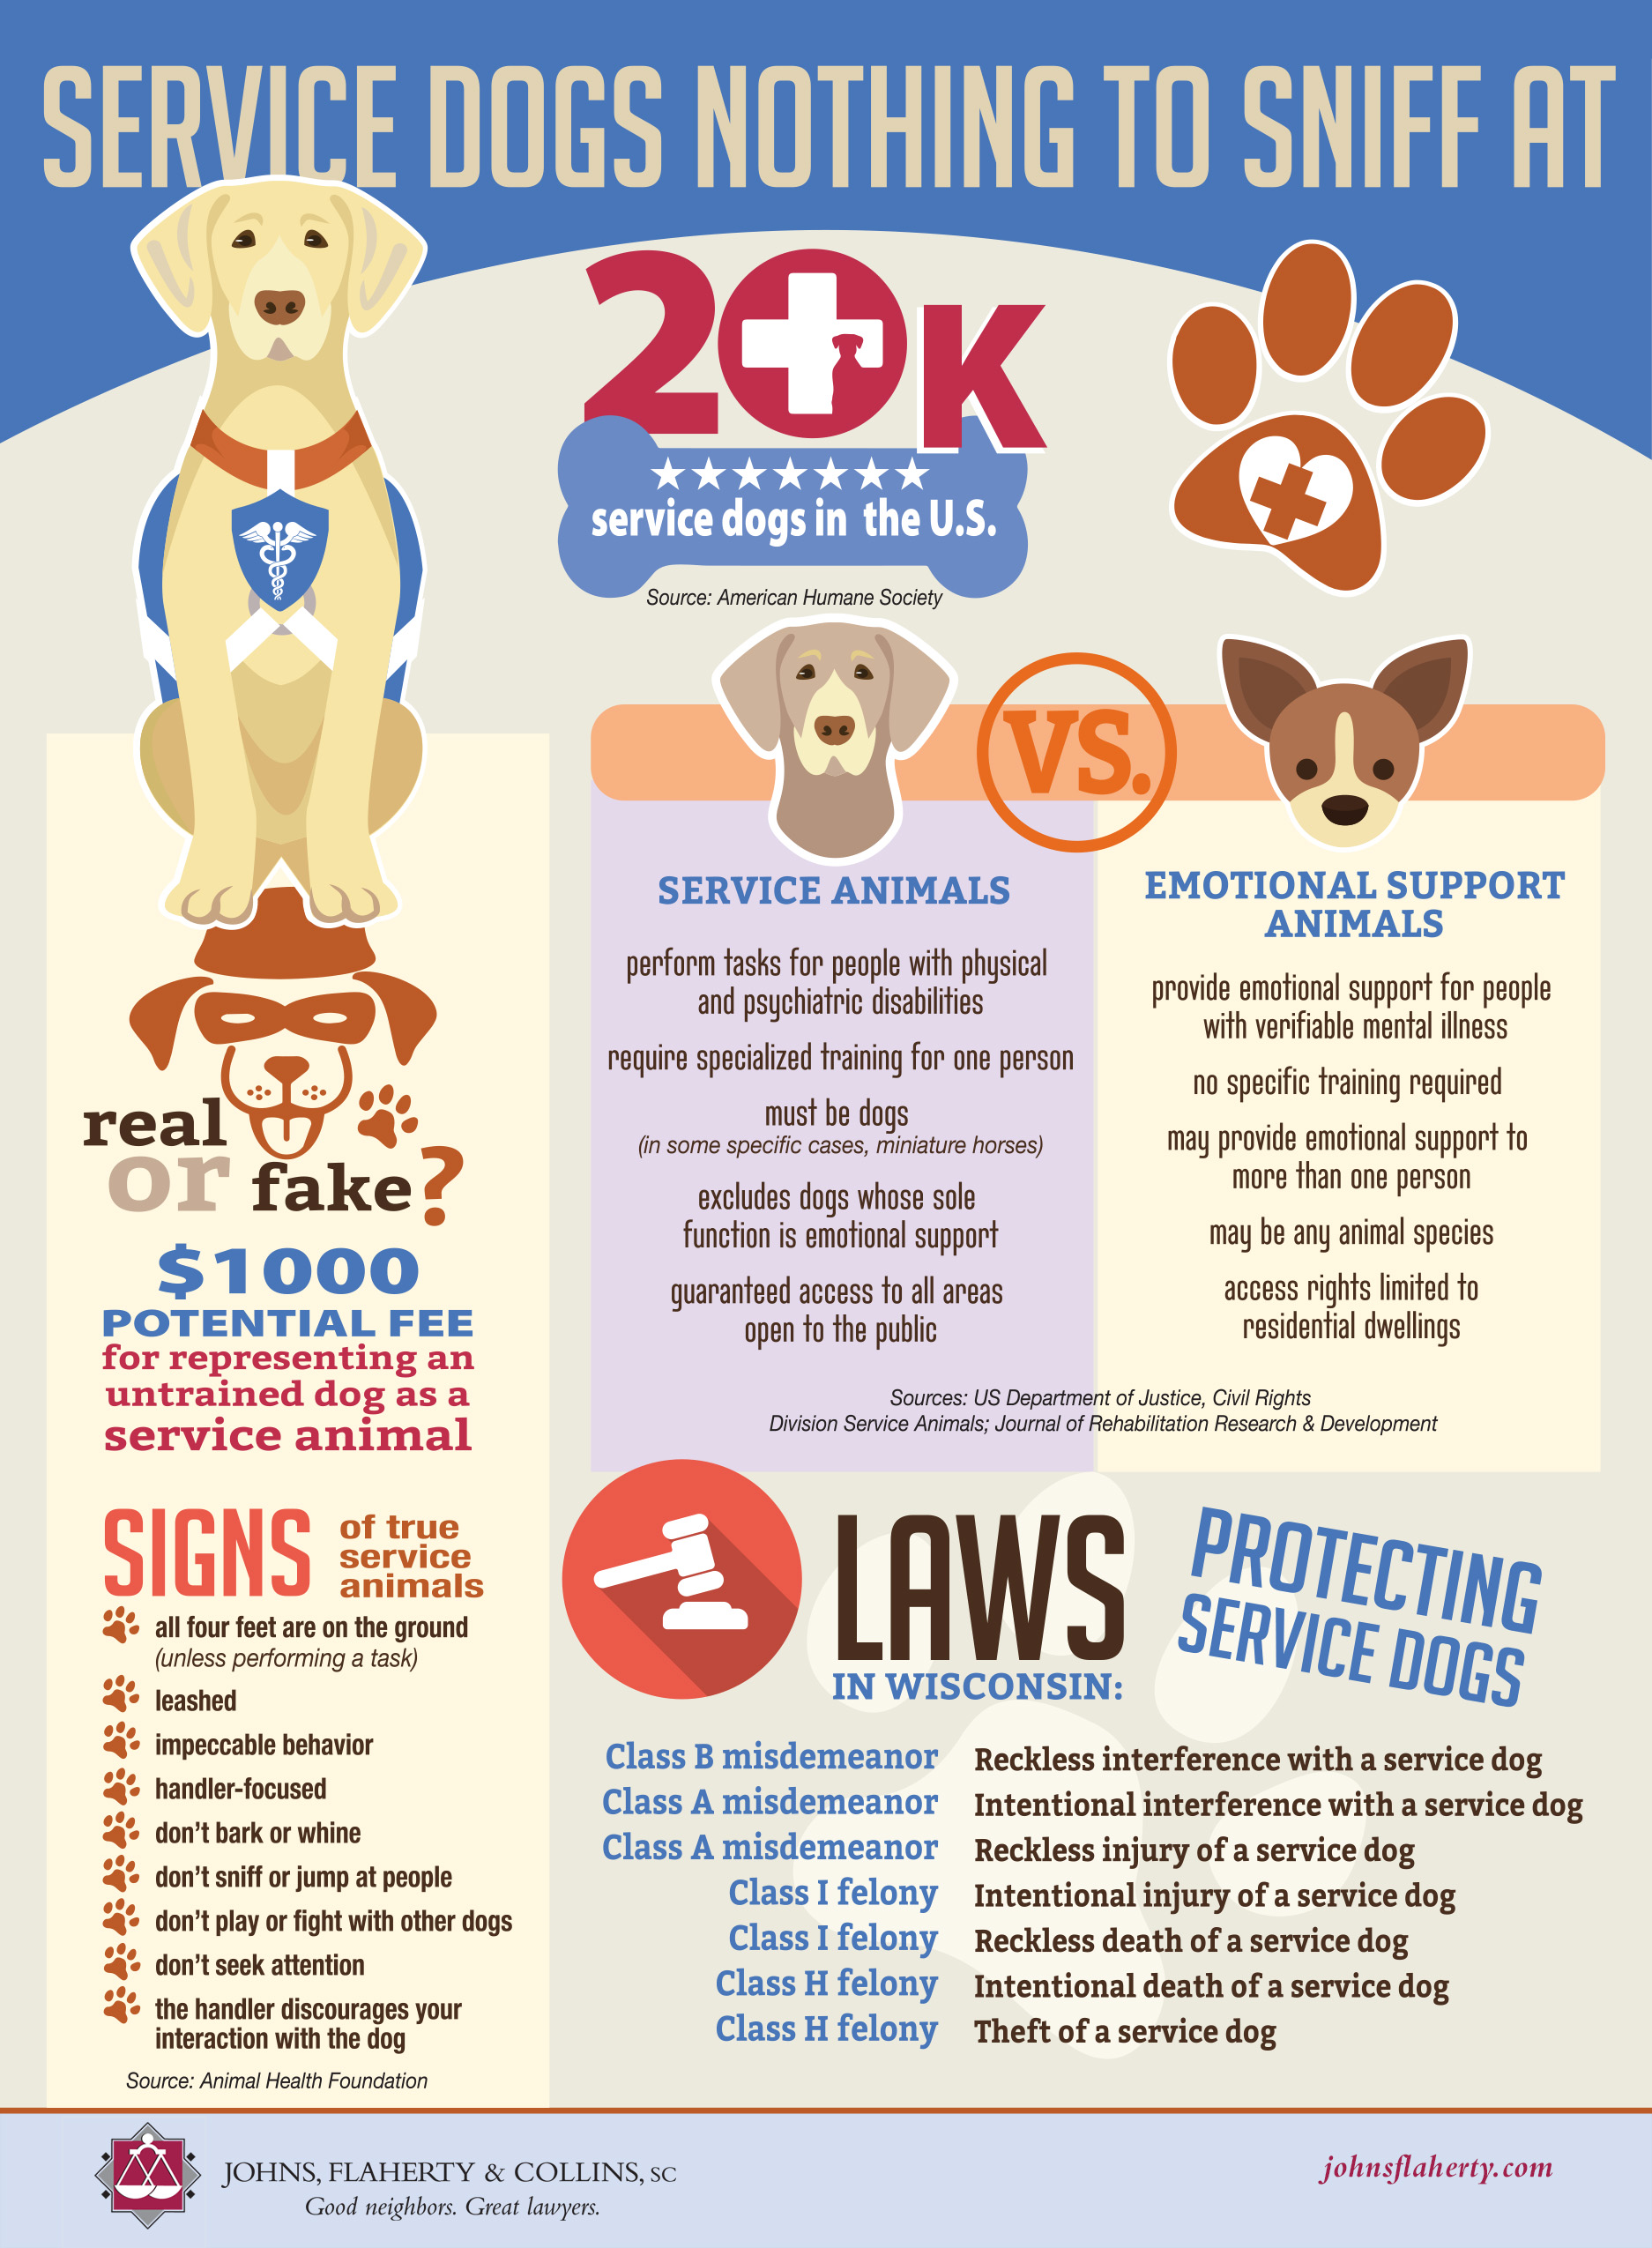 service dogs vs emotional support animals